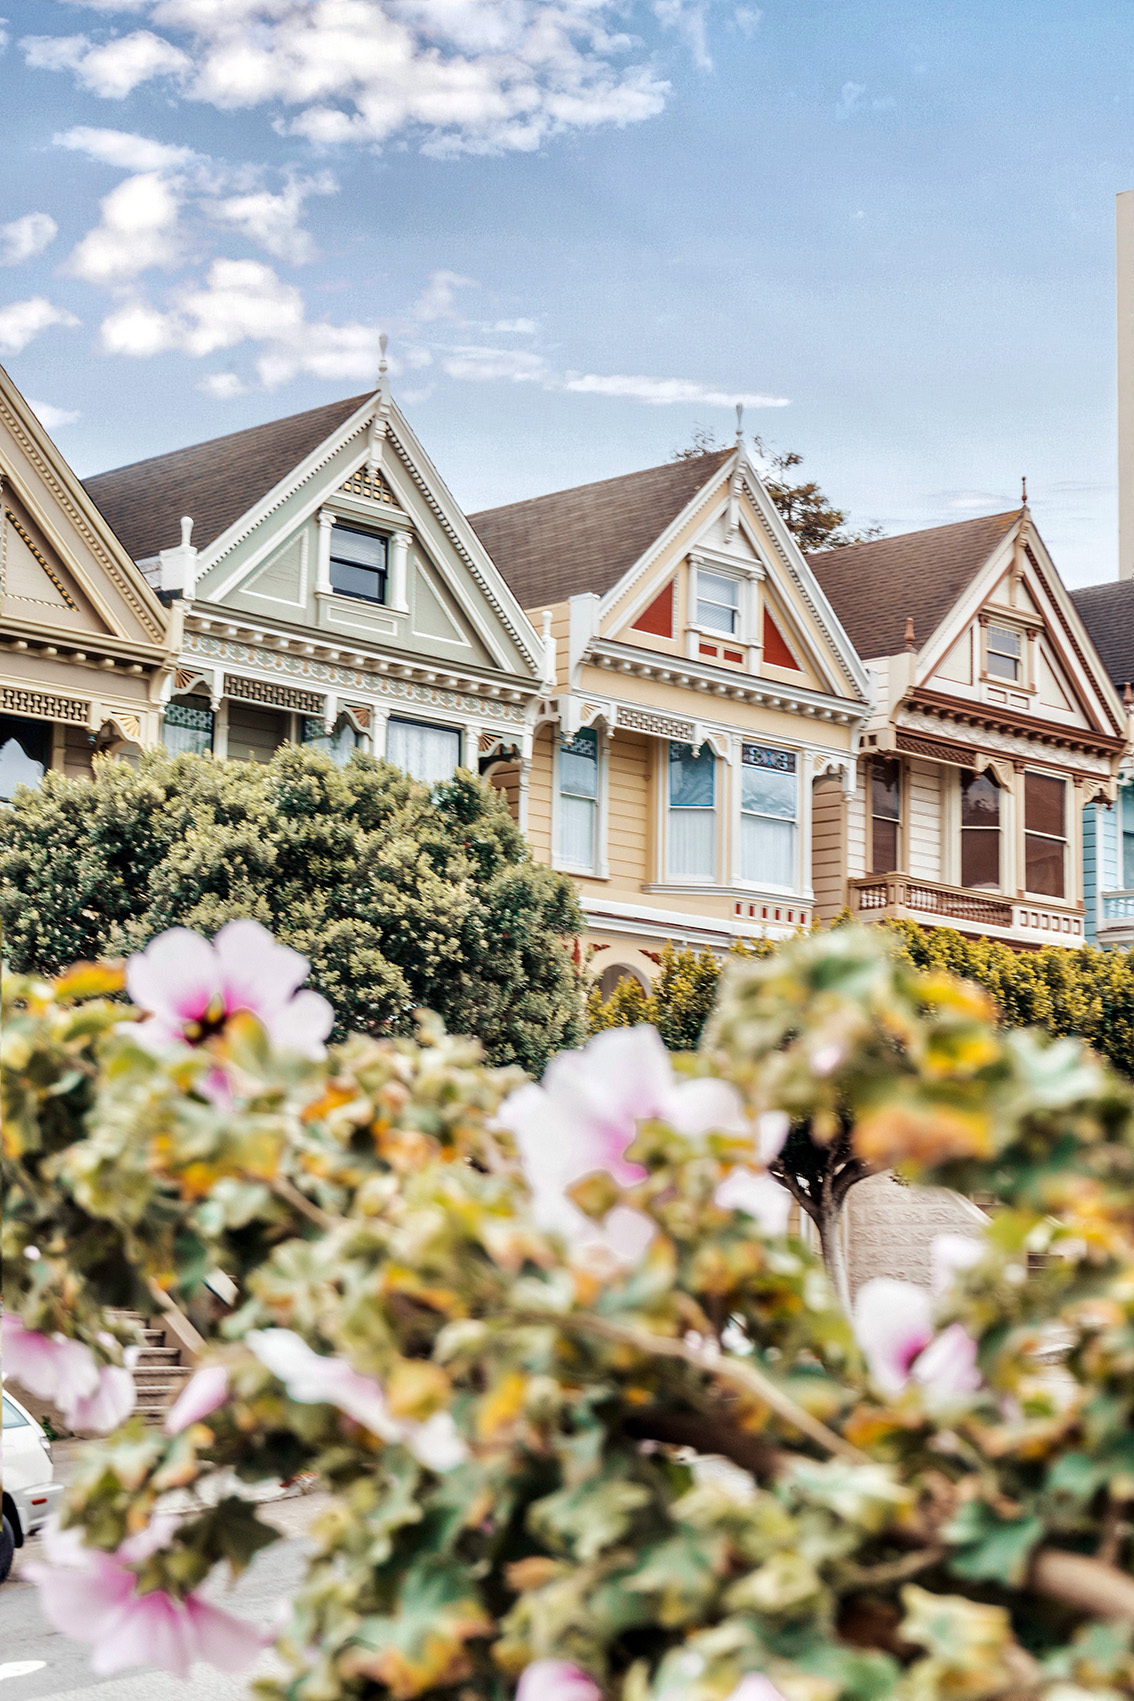 32 10 most instagrammable places in San Francisco you don't have to miss!